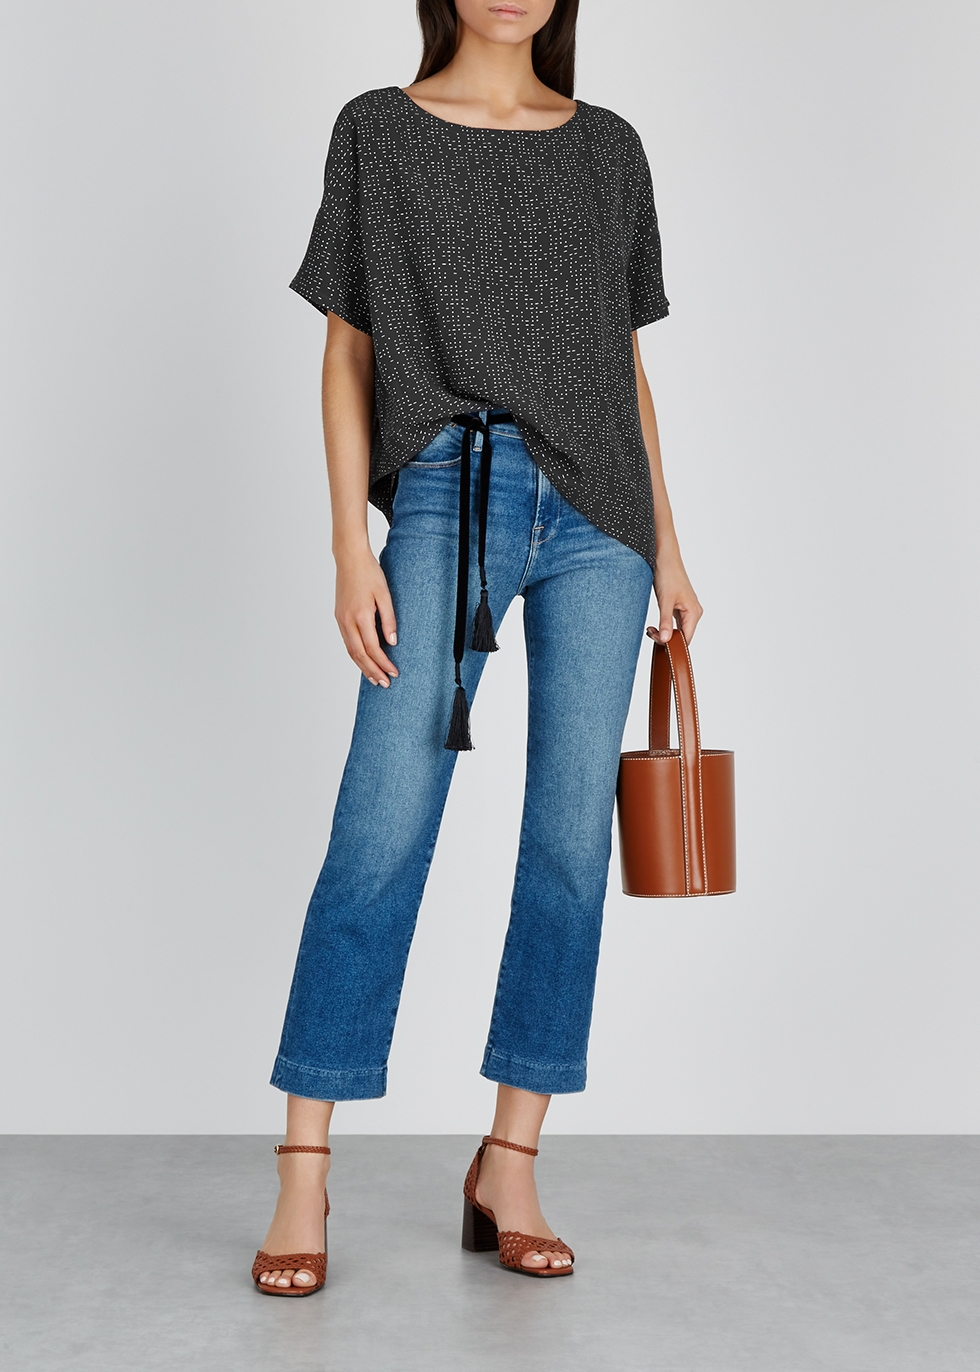 Grey printed crepe de chine top - EILEEN FISHER